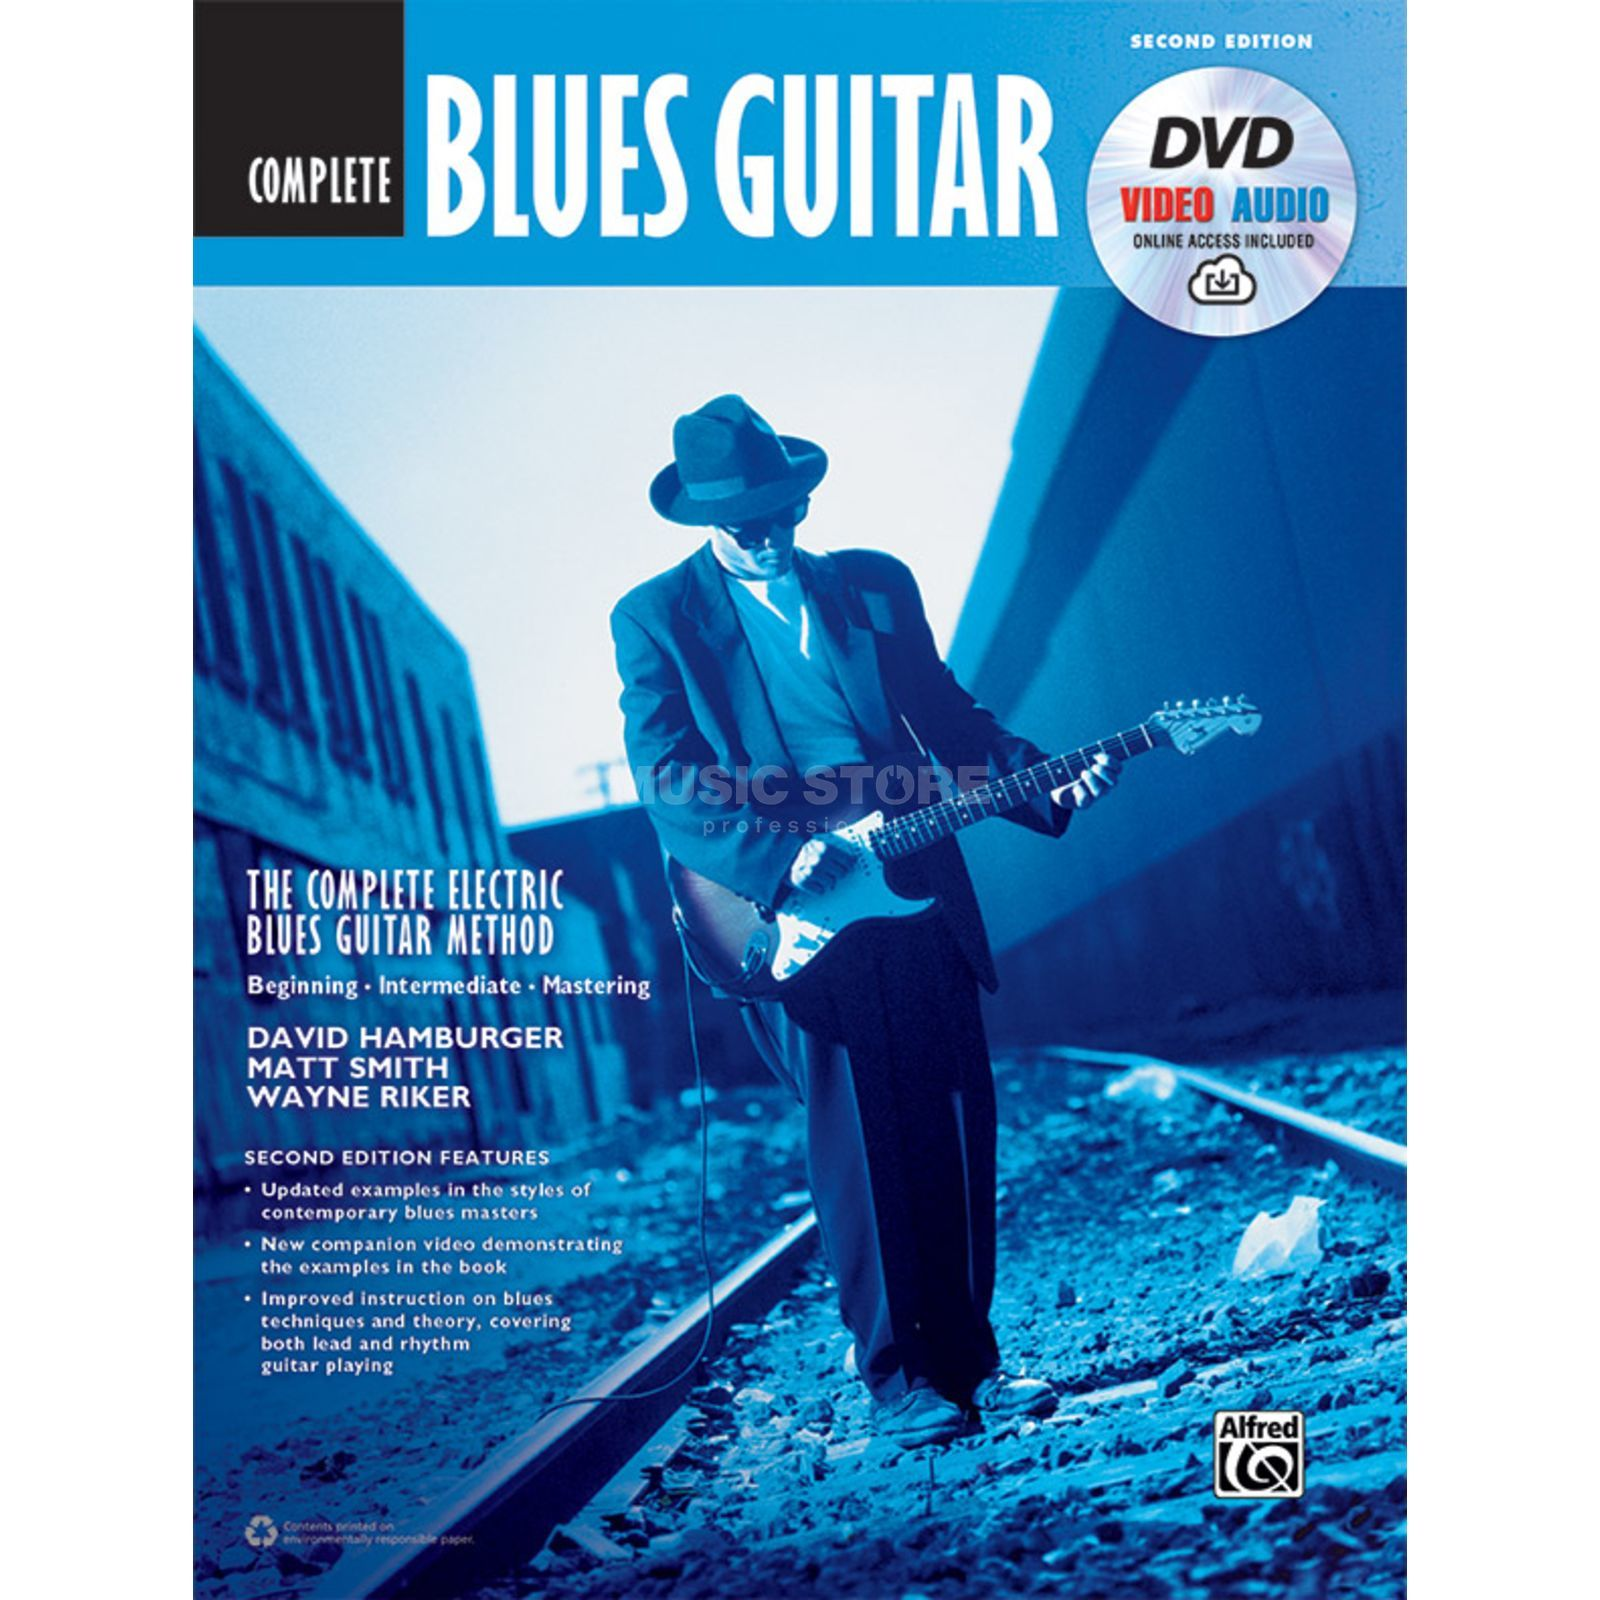 Alfred Music The Complete Blues Guitar Method: Complete Edition (Second Edition) Produktbild